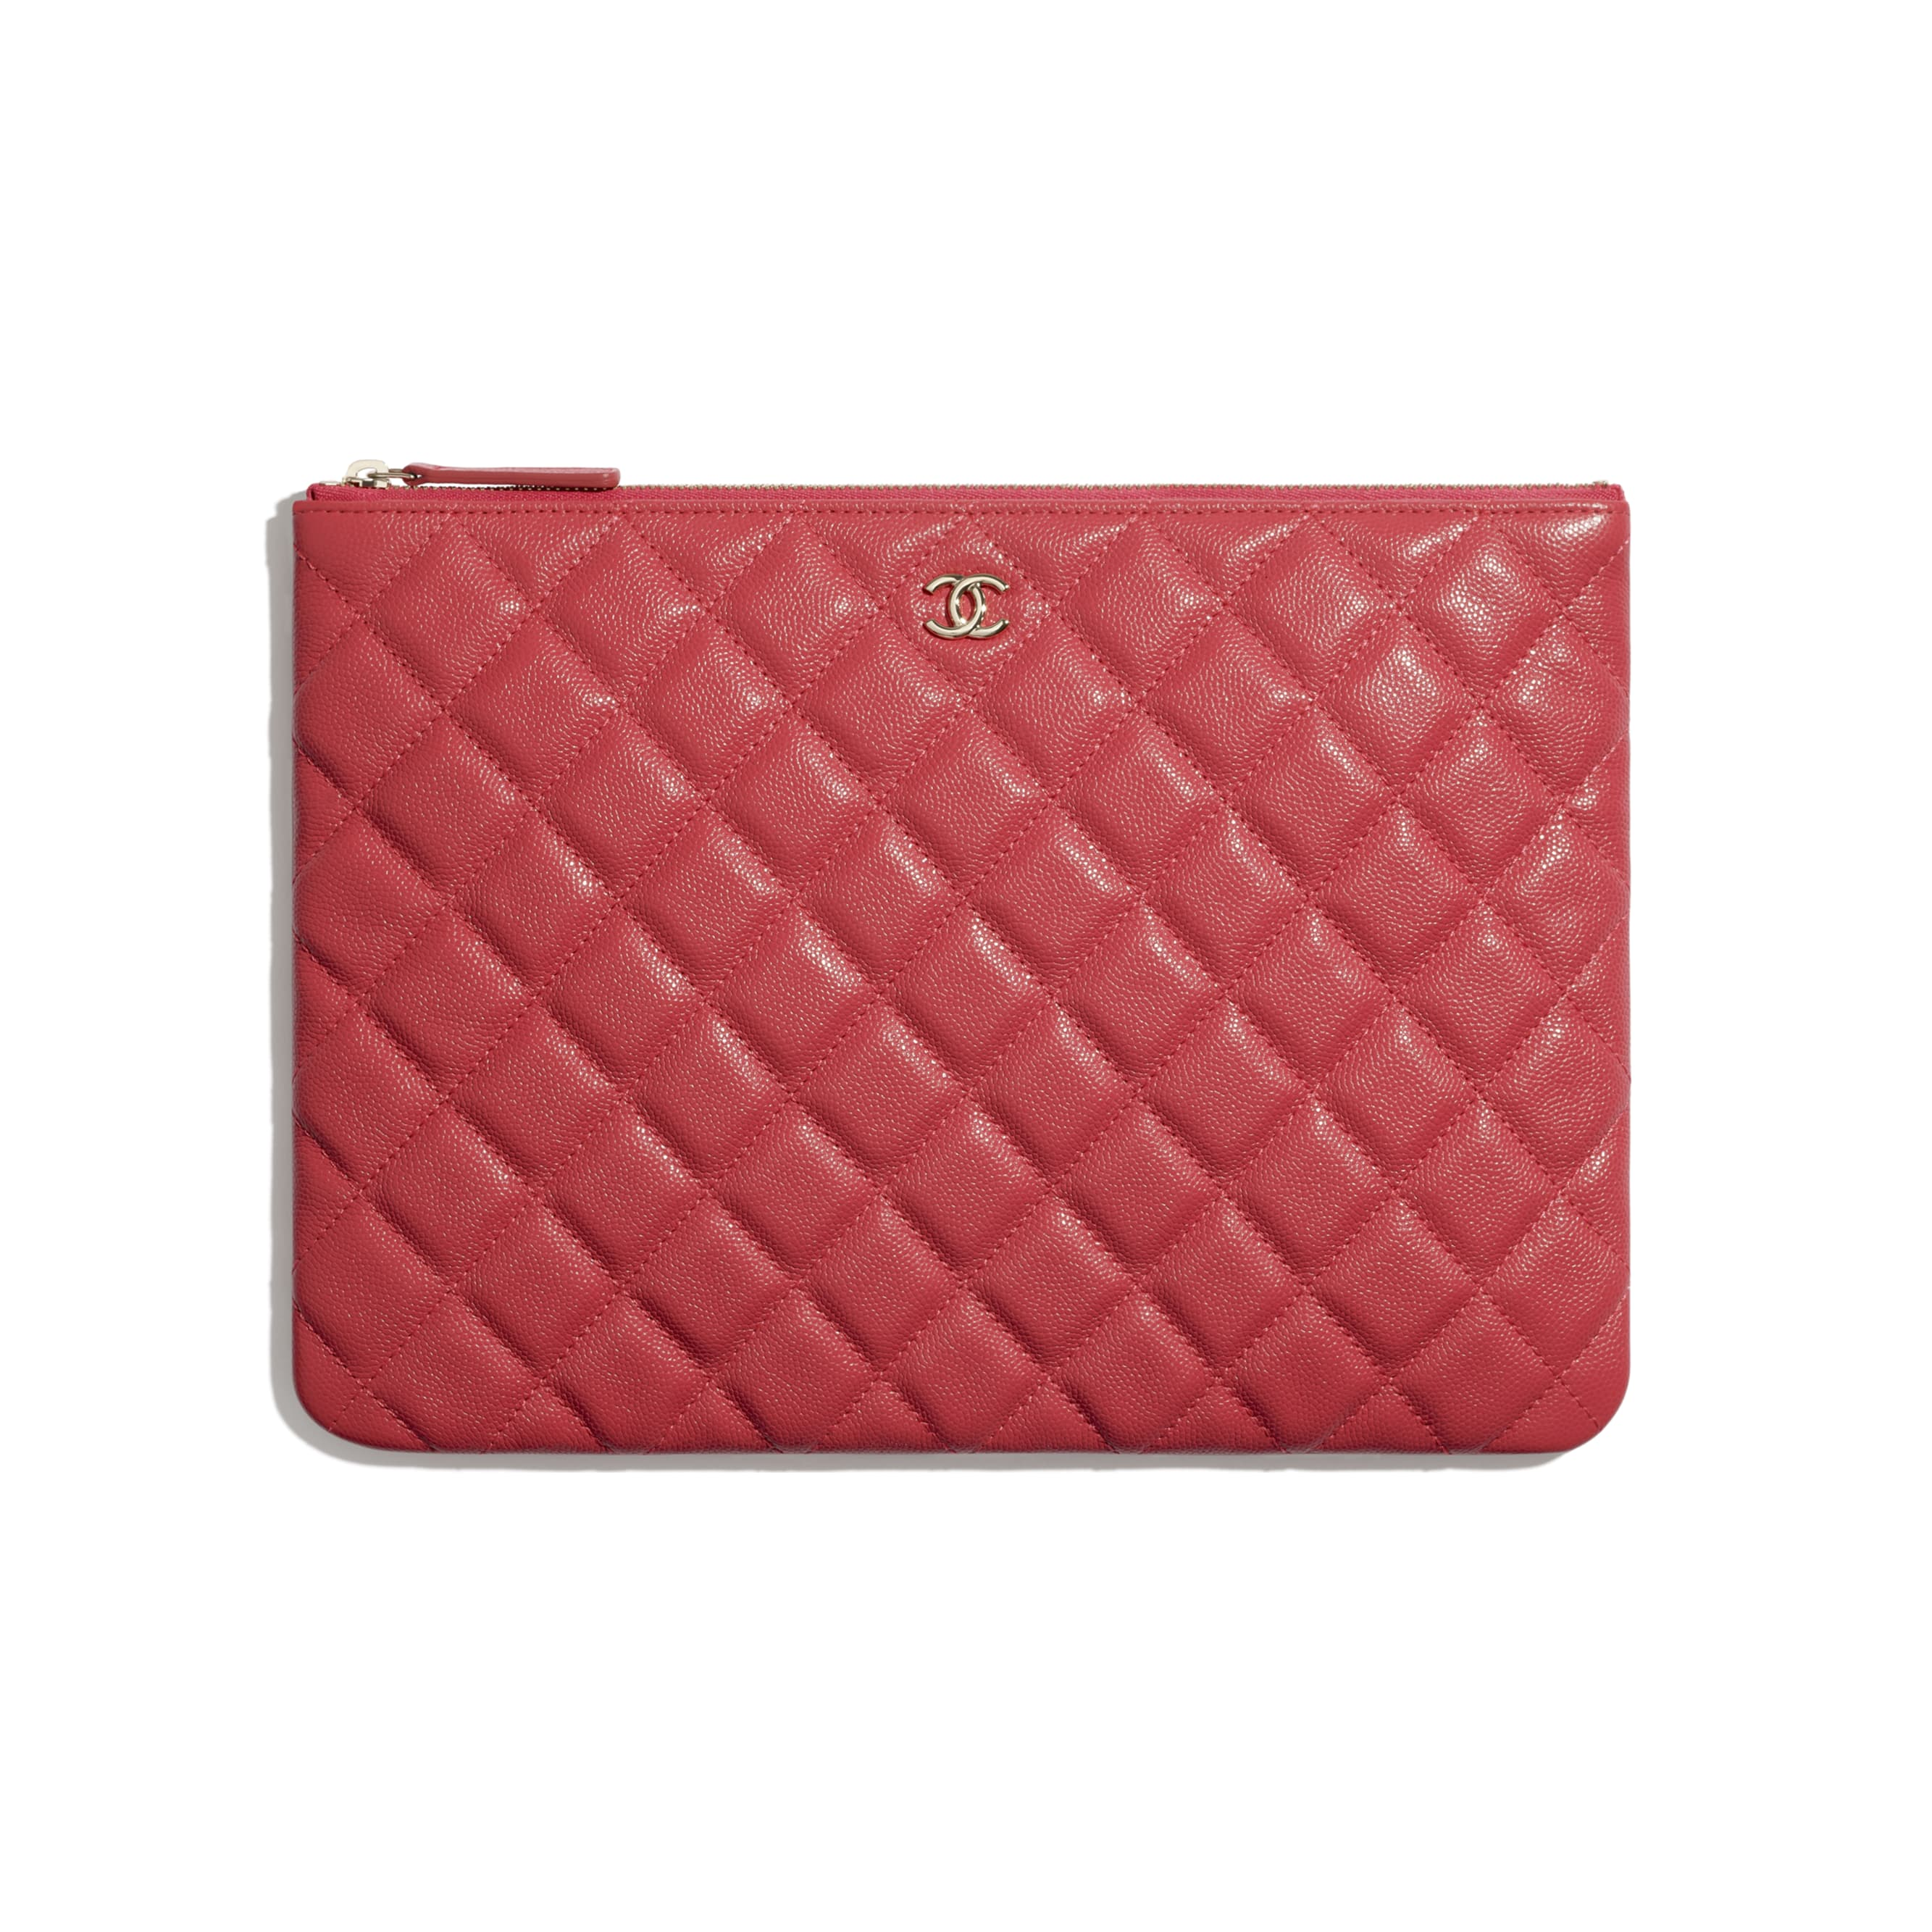 Classic Pouch - Red - Grained Shiny Calfskin & Gold-Tone Metal - CHANEL - Default view - see standard sized version